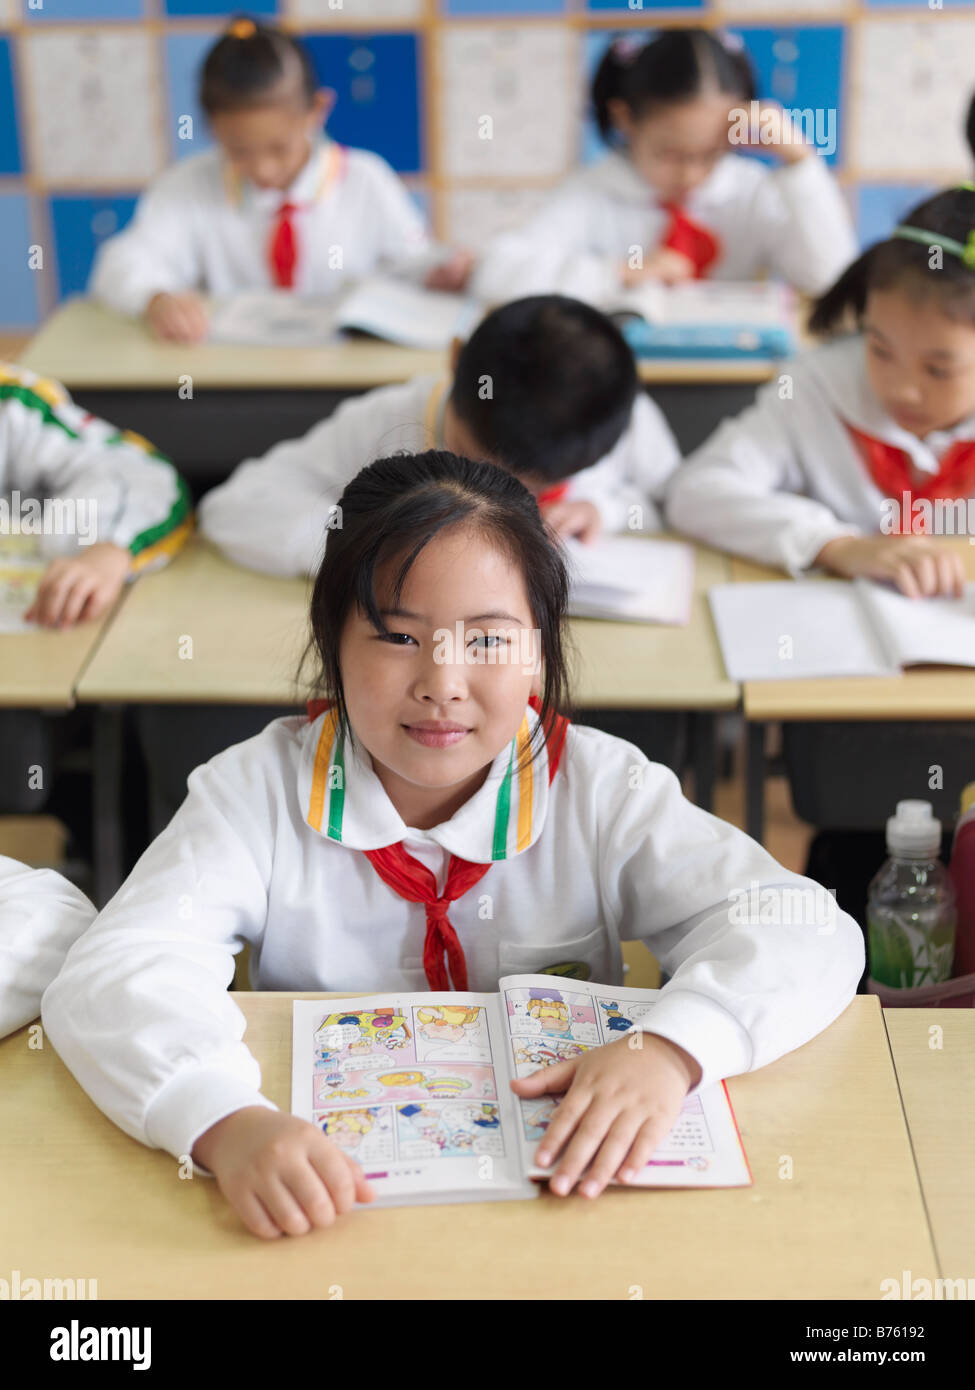 A classroom of young Chinese students reading a lesson from their textbook. - Stock Image